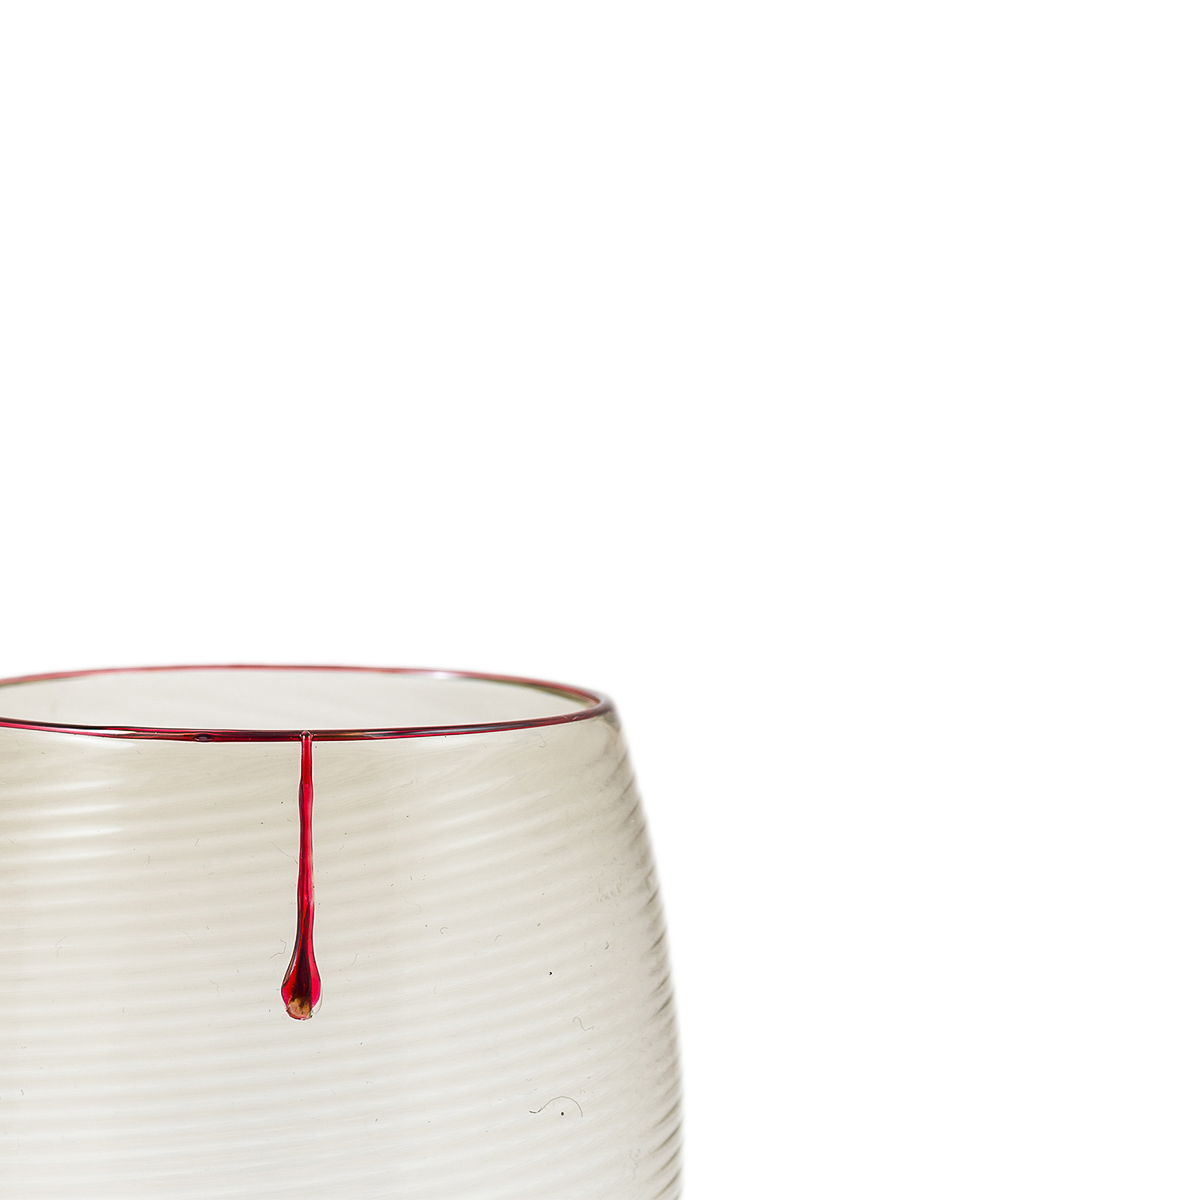 julia-ruby-wine-fume-grey-glass-detail-murano-design-luxury